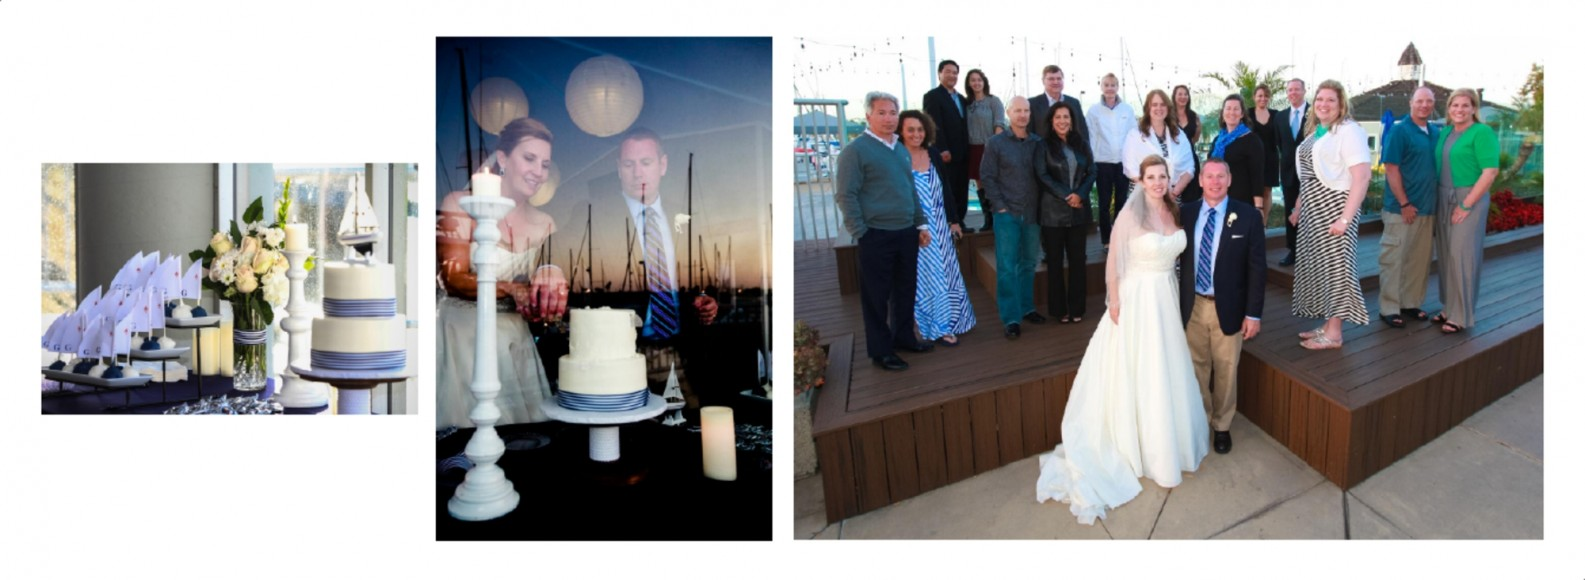 Laura and Davids Wedding Book - San Diego Yacht Wedding by Wedding Photographers Andrew Abouna - Pages 40-41